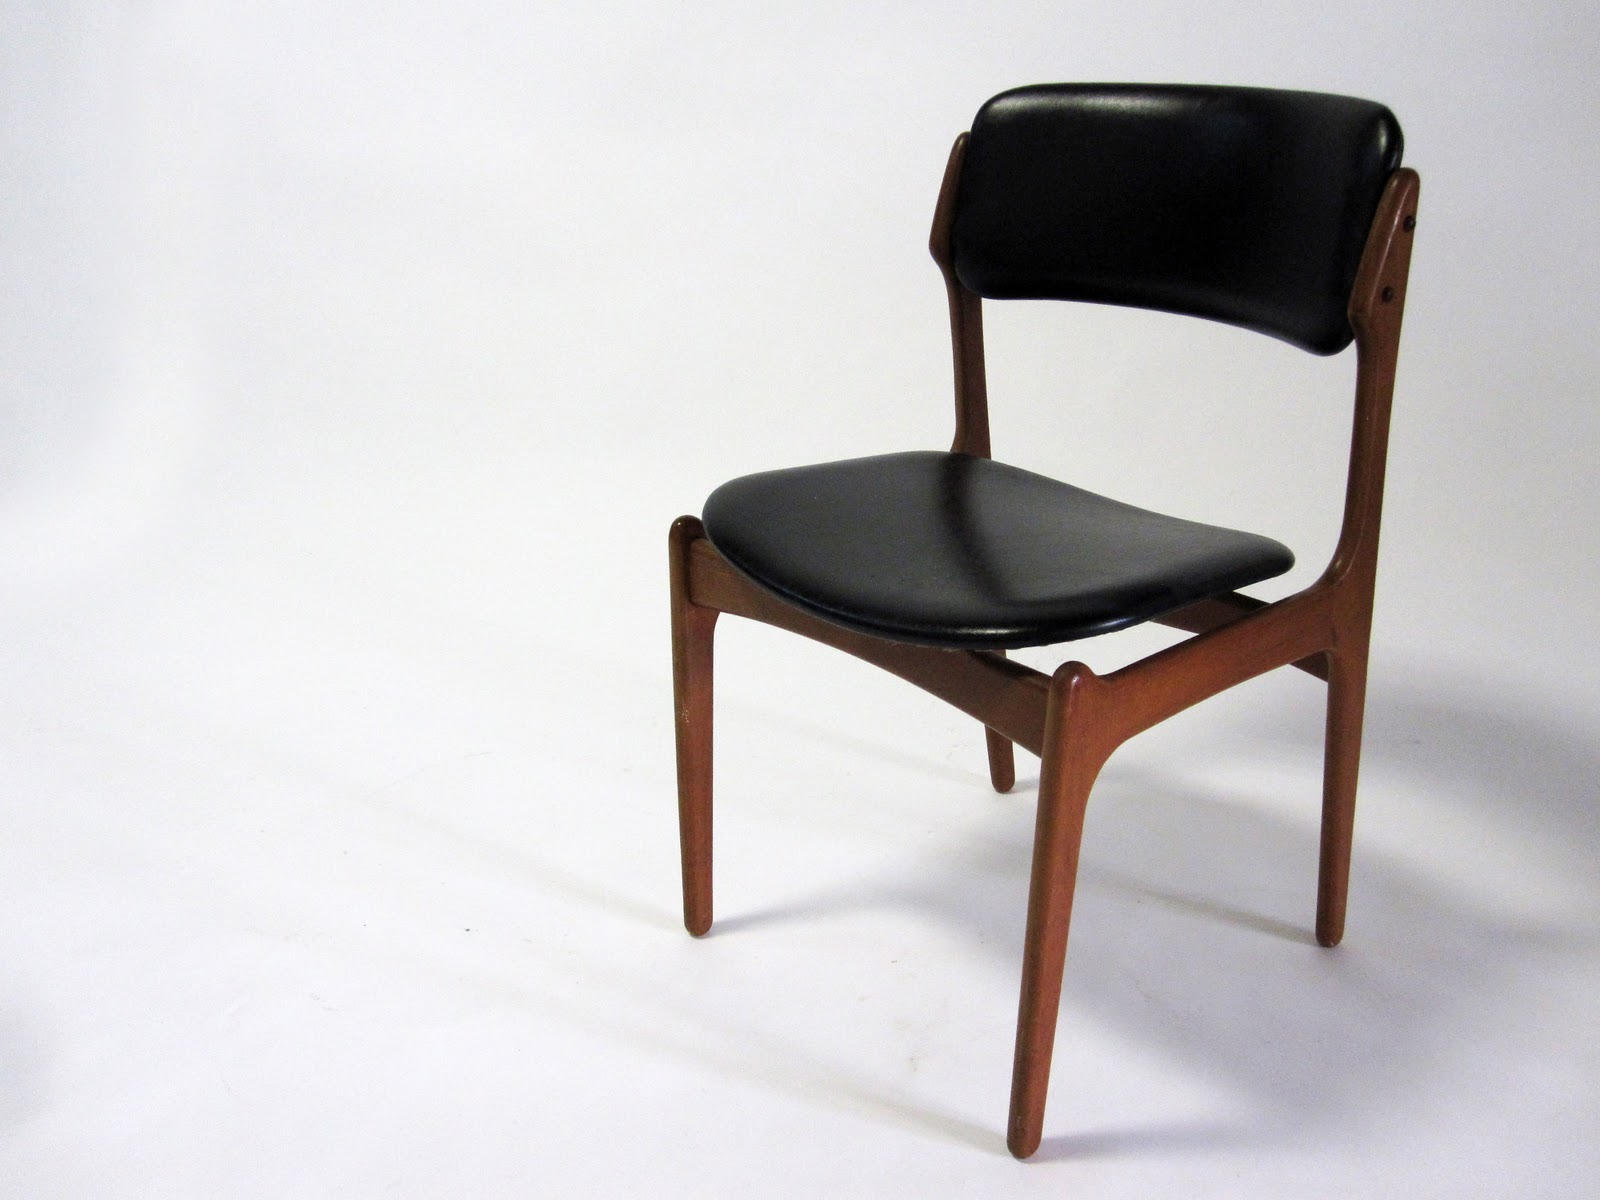 Modern dining chair 4 black dining chairs 100 modern for Modern dining chairs australia